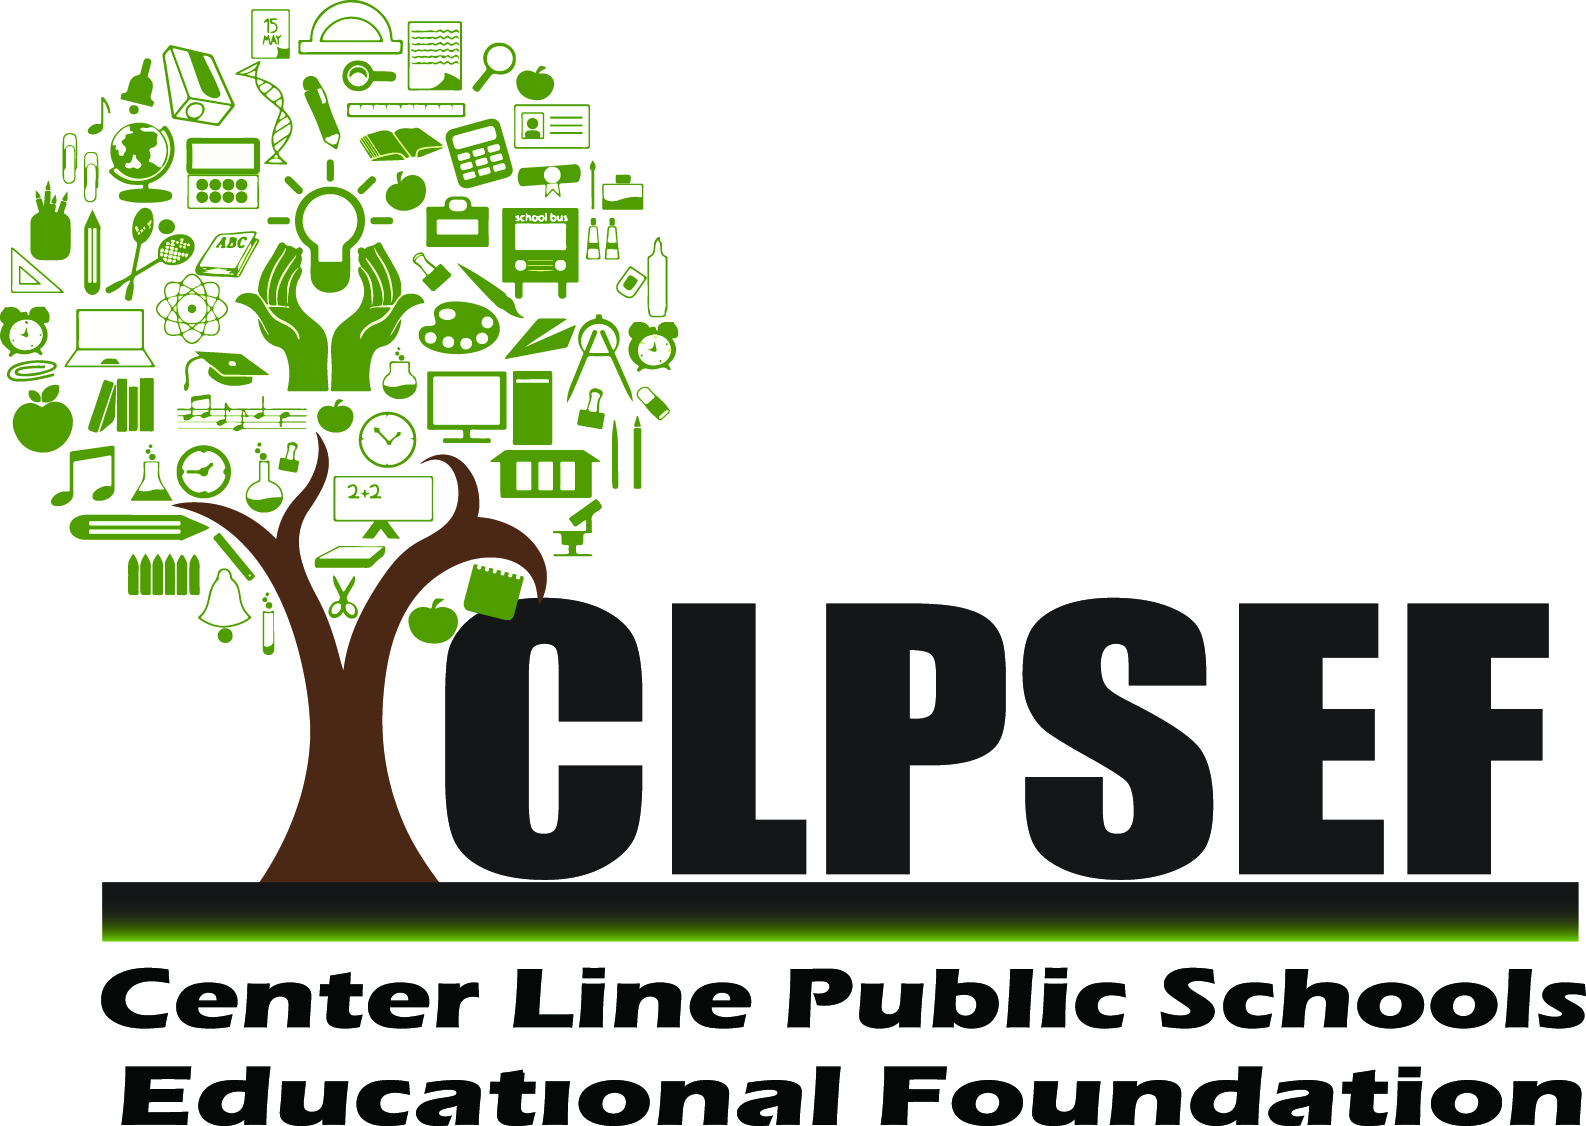 CLPSEF logo including a brown tree with green leaves made of education symbols and the acronym CLPSEF.